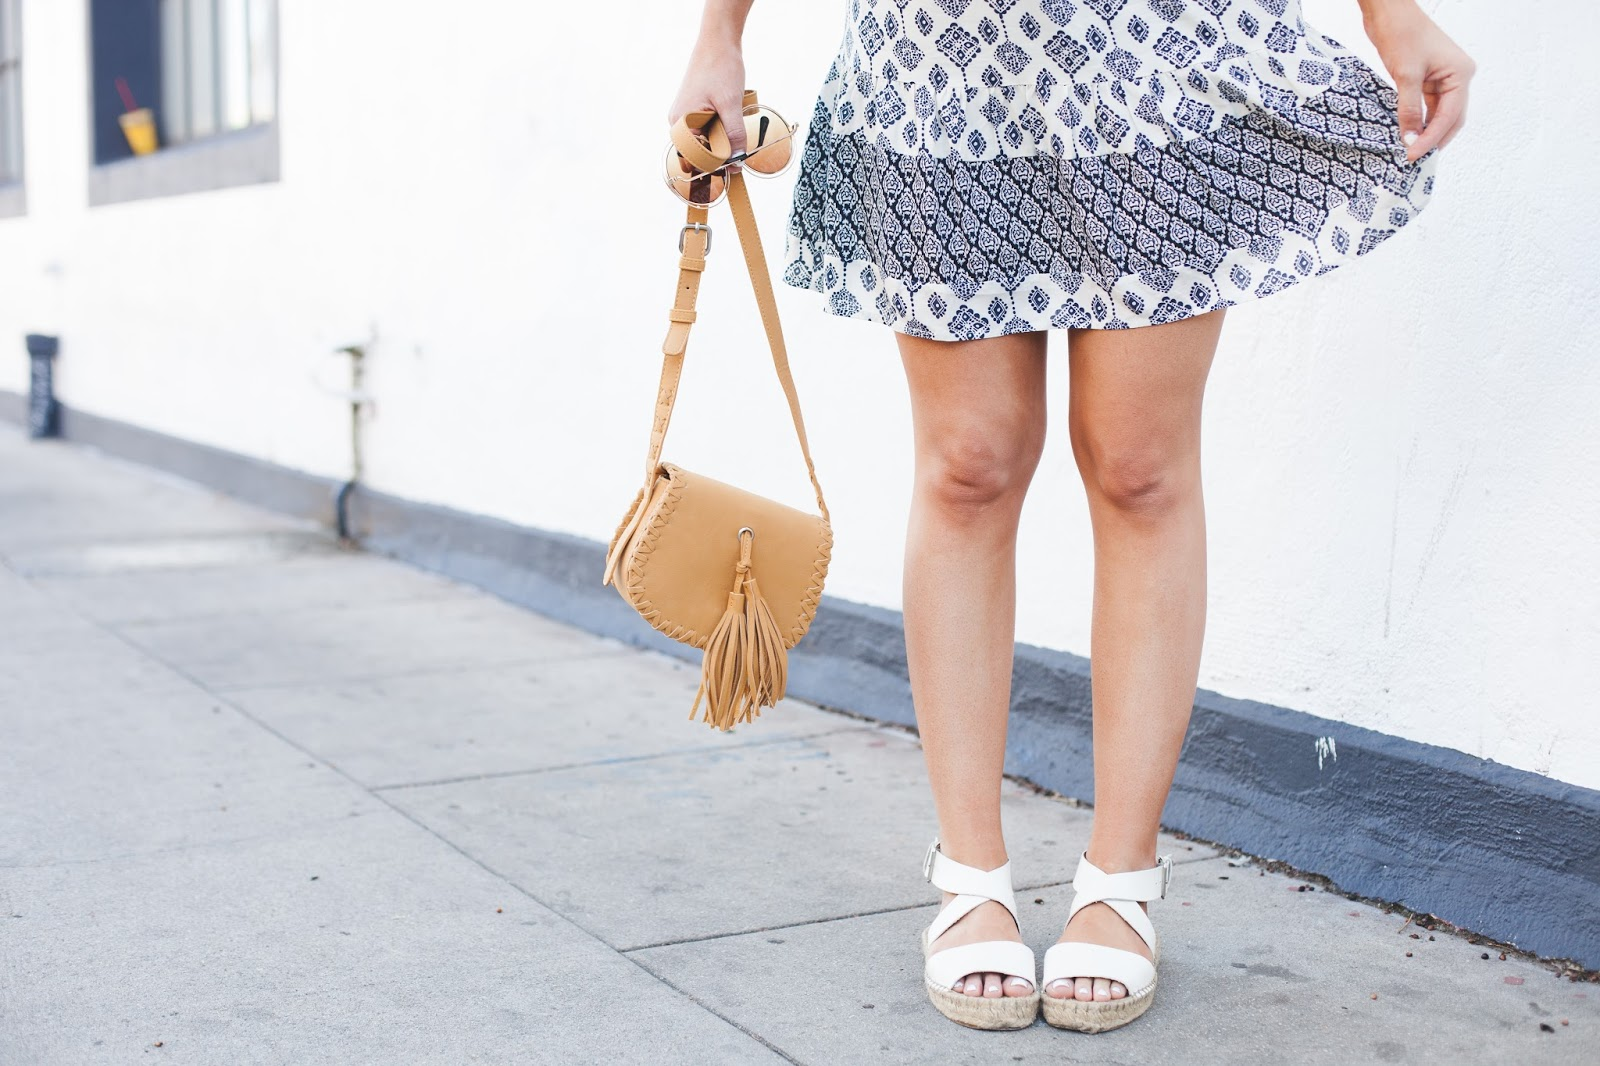 Boho Vibes with Espadrilles - My Cup of Chic